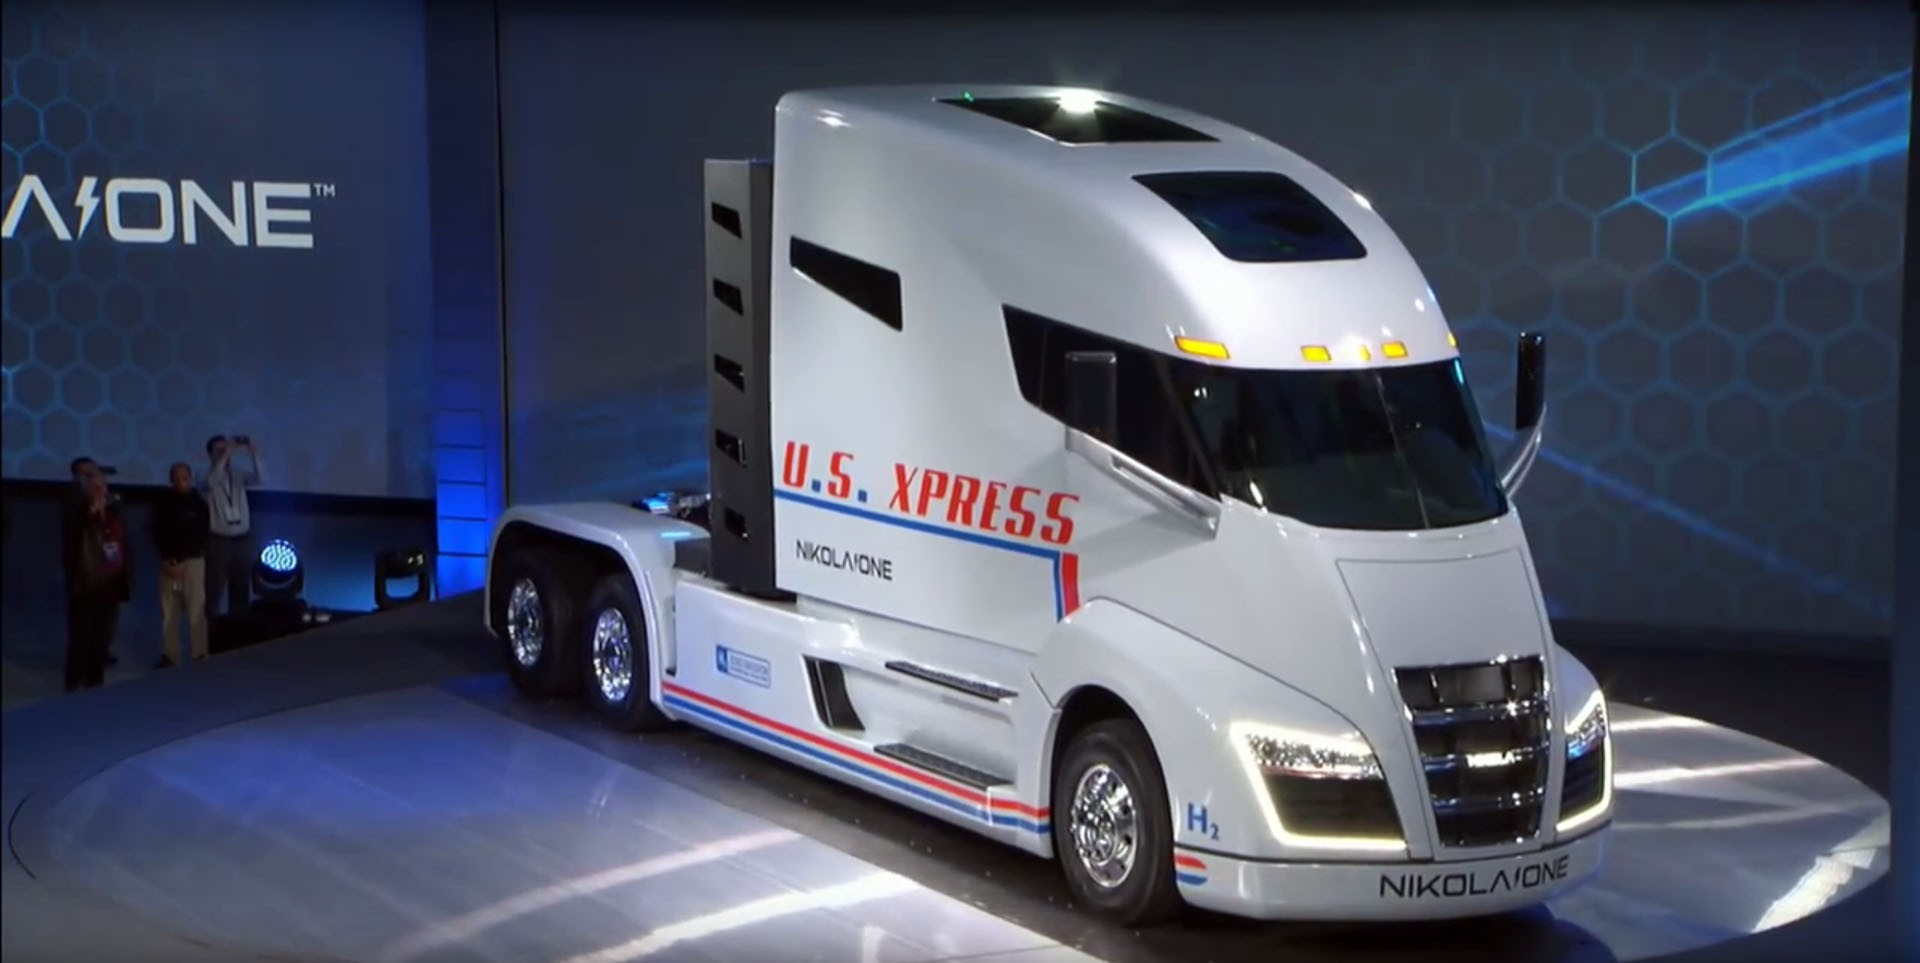 Nikola sues Tesla over patent infringement for Semi